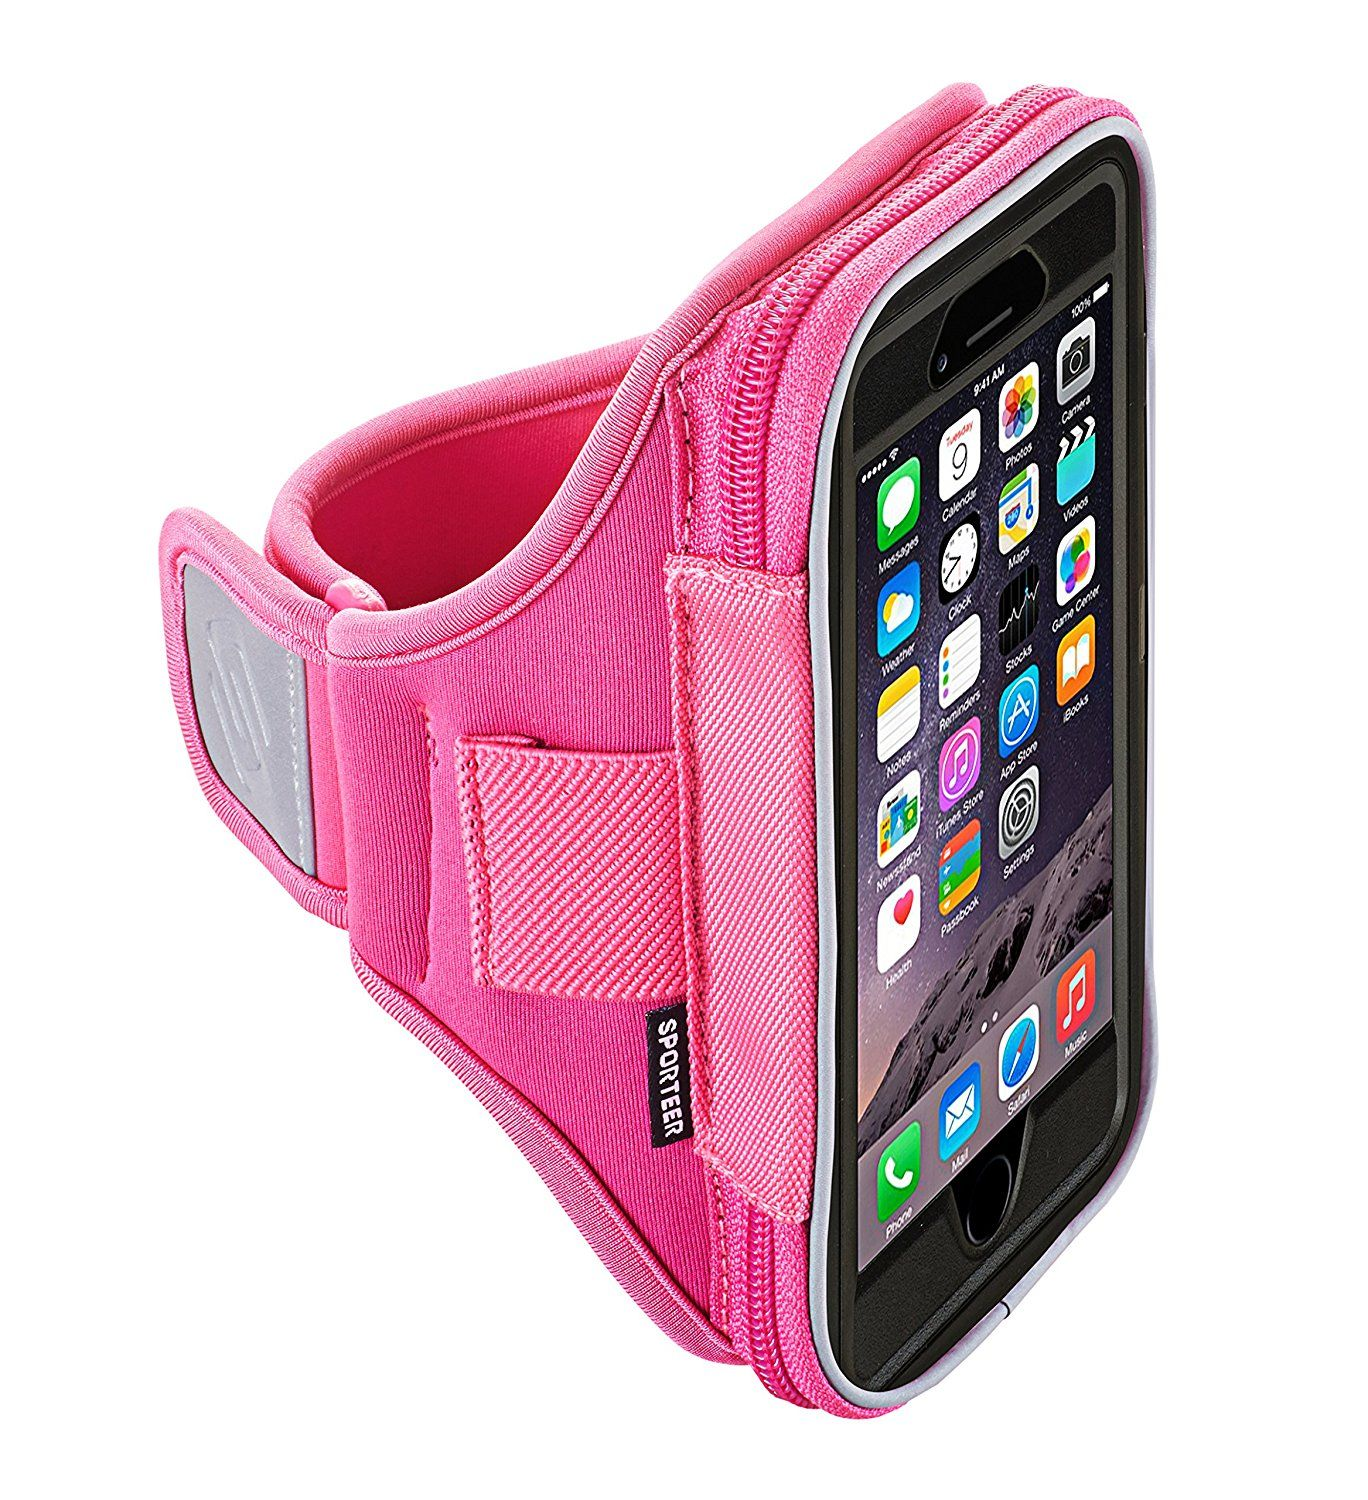 Sporteer Velocity V6 Armband for iPhone X, iPhone 8